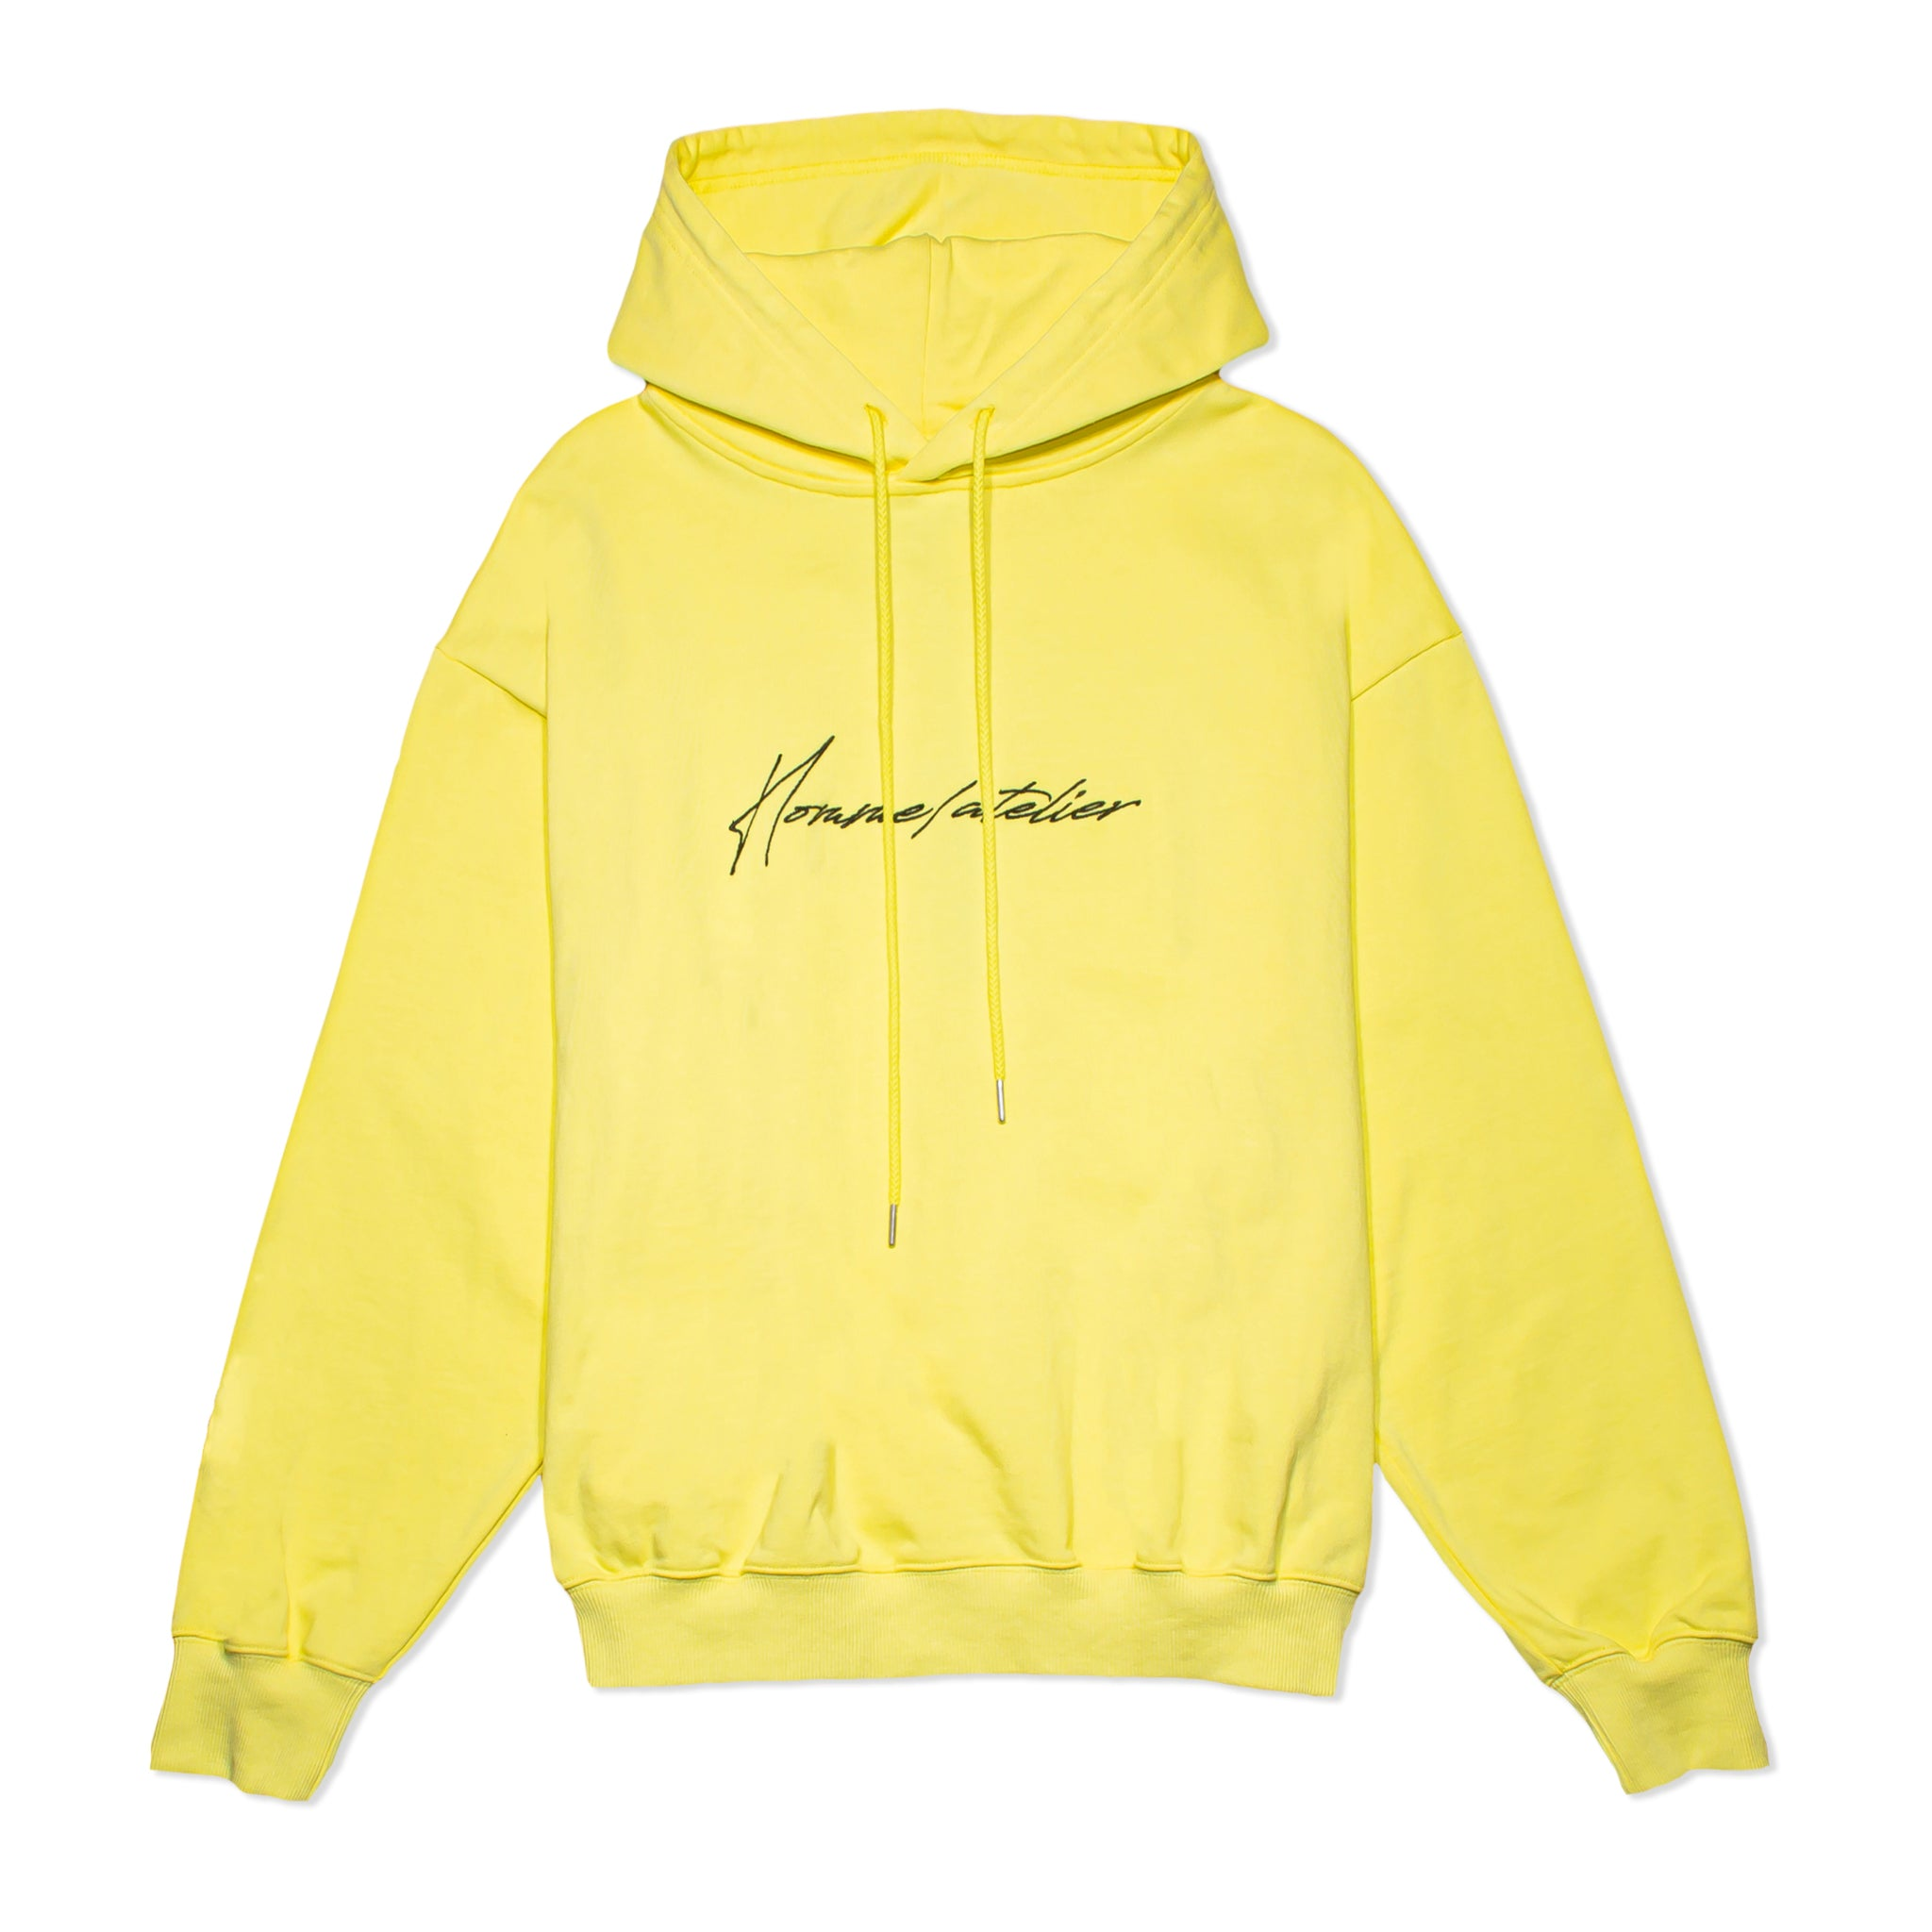 HOMME+ Atelier Embroidery Hoodie Yellow